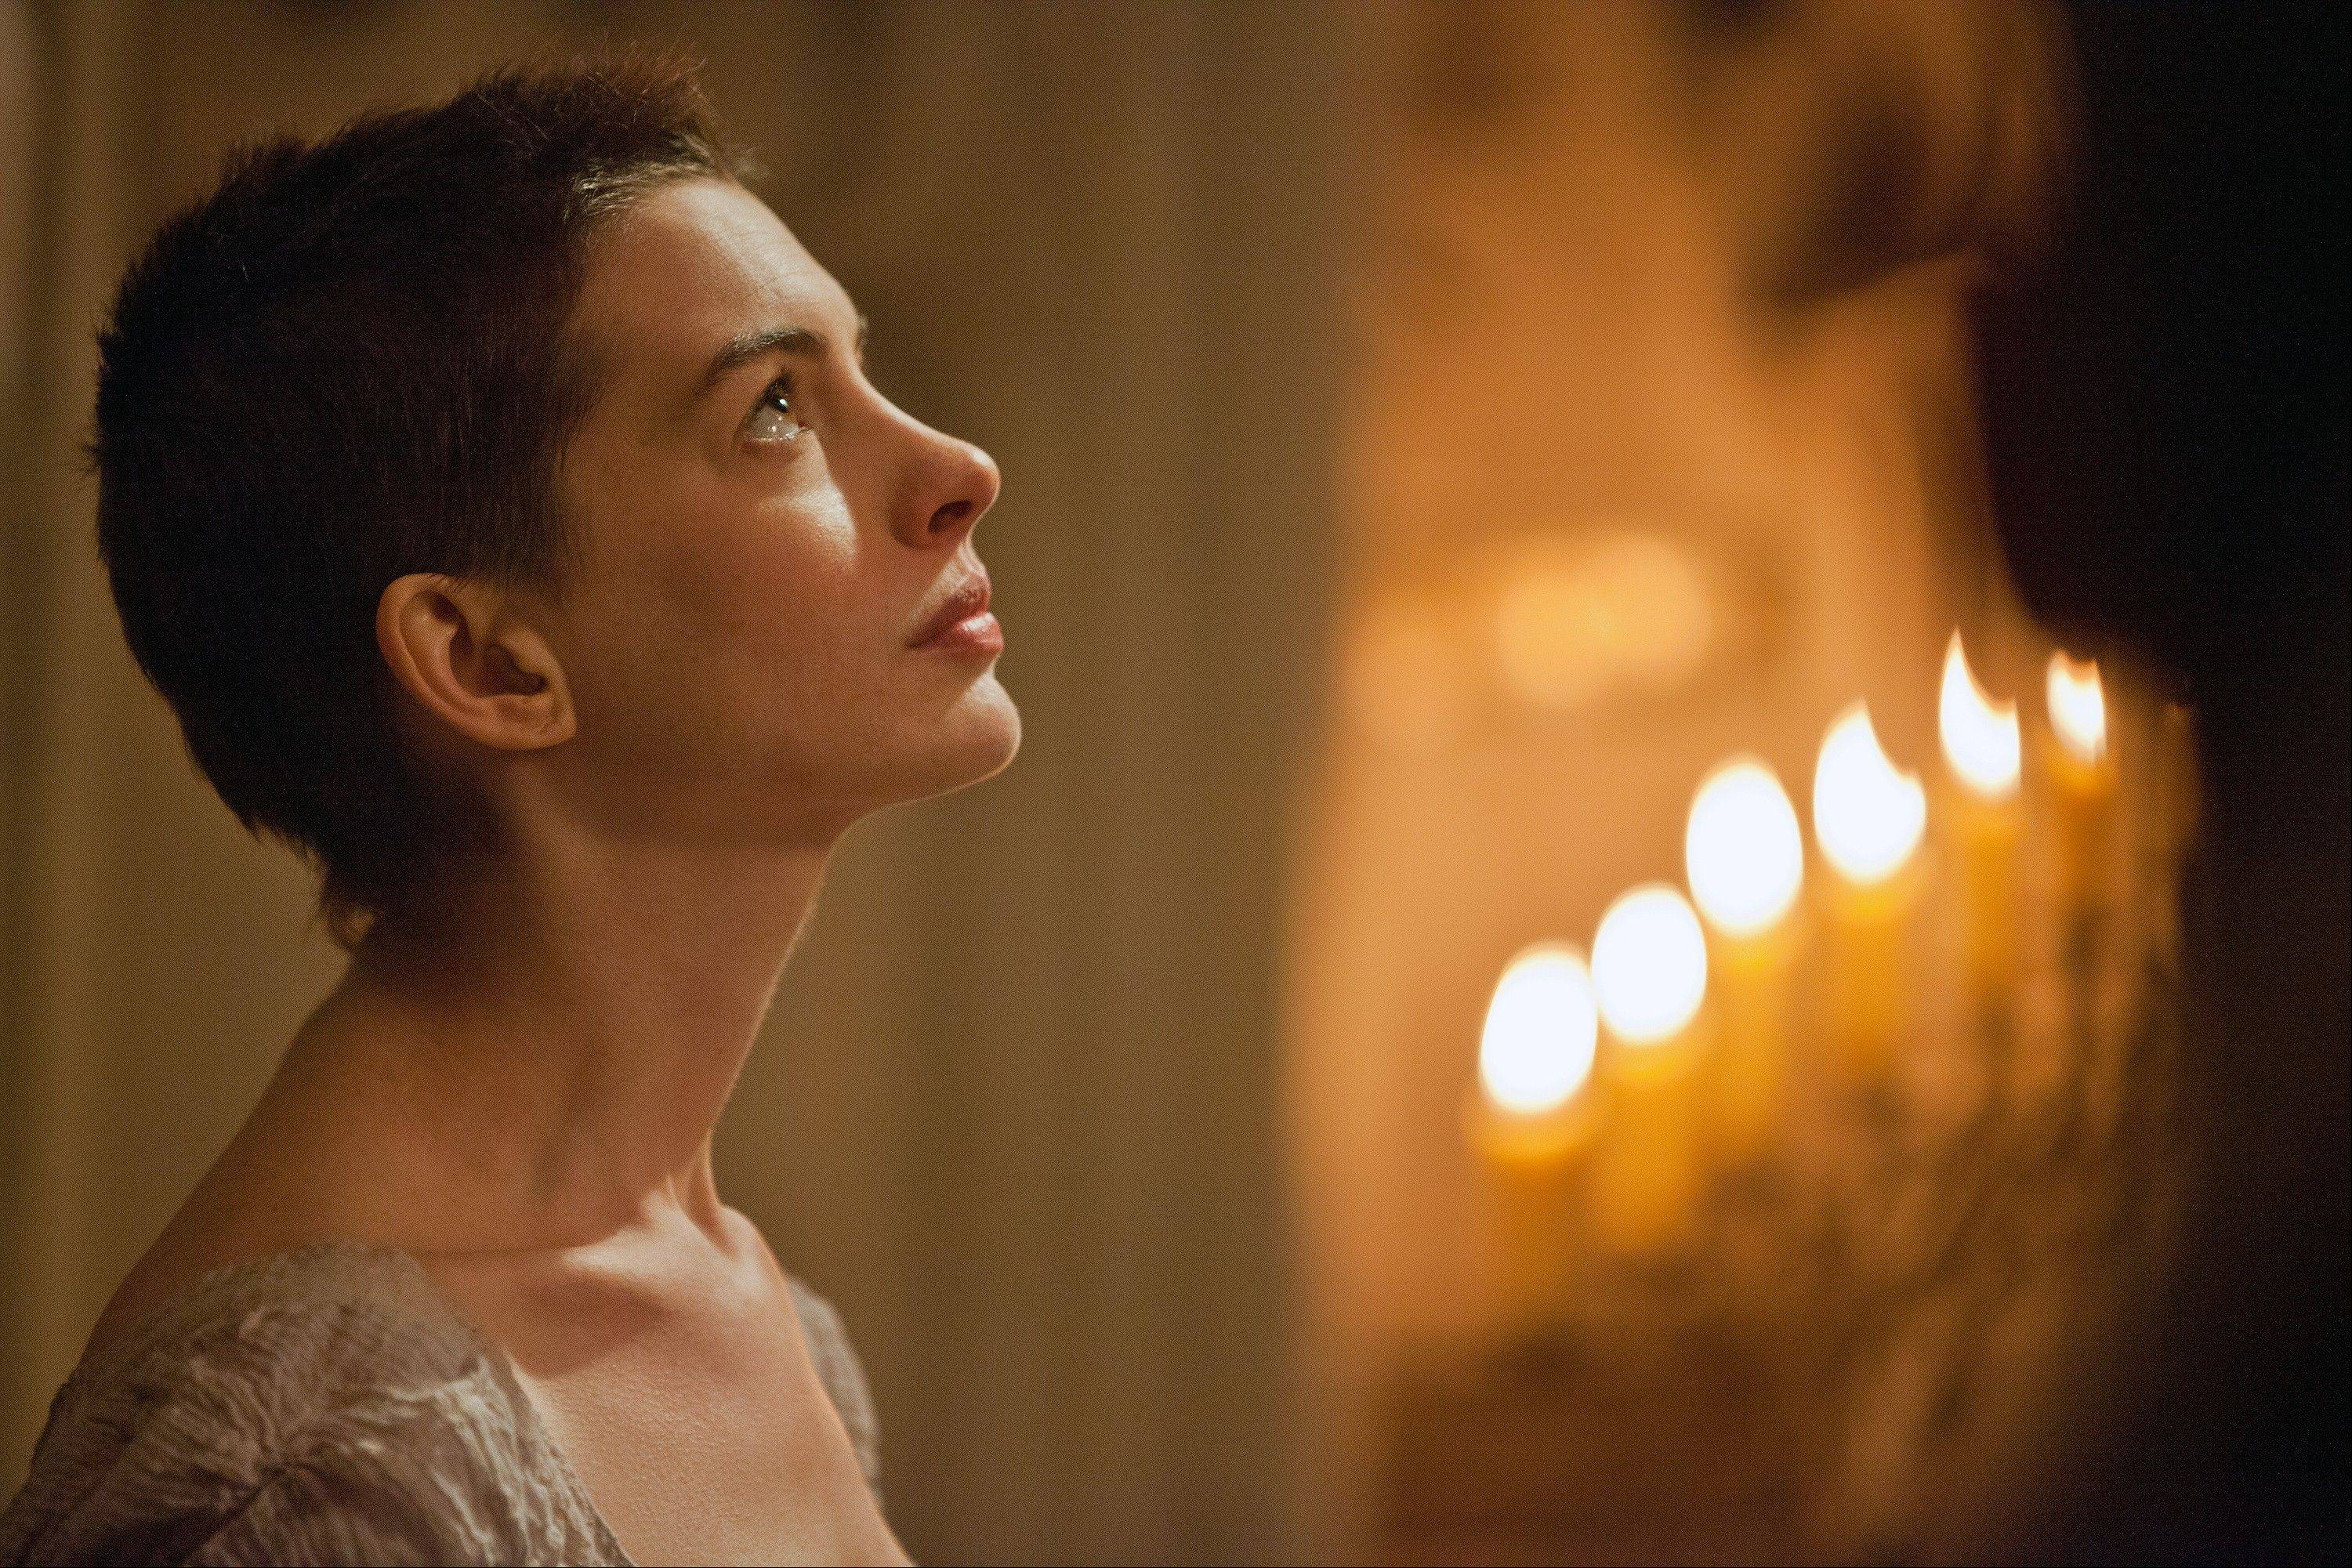 "This film image released by Universal Pictures shows actress Anne Hathaway portraying Fantine, a struggling, sickly mother forced into prostitution in 1800s Paris, in a scene from the screen adaptation of ""Les Miserables."" Hathaway was nominated for an Academy Award for best supporting actress on Thursday, Jan. 10, 2013, for her role in the film. The 85th Academy Awards will air live on Sunday, Feb. 24, 2013 on ABC."